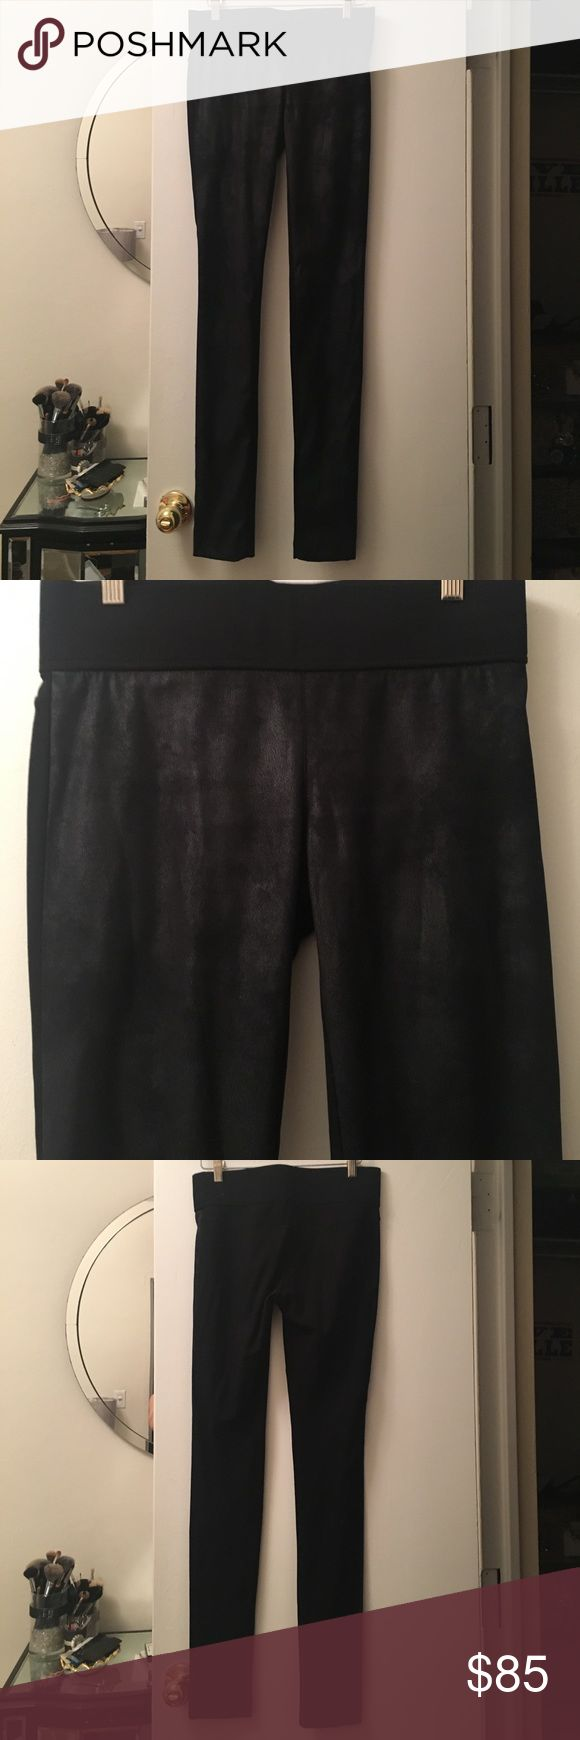 Club Monaco Black Leggings Club Monaco Black Leggings. NEVER WORN. Front side of leggings are ultra suede with a semi-sheen. Size 2. Thick elastic waistband that holds you in in all the right places! Club Monaco Pants Leggings